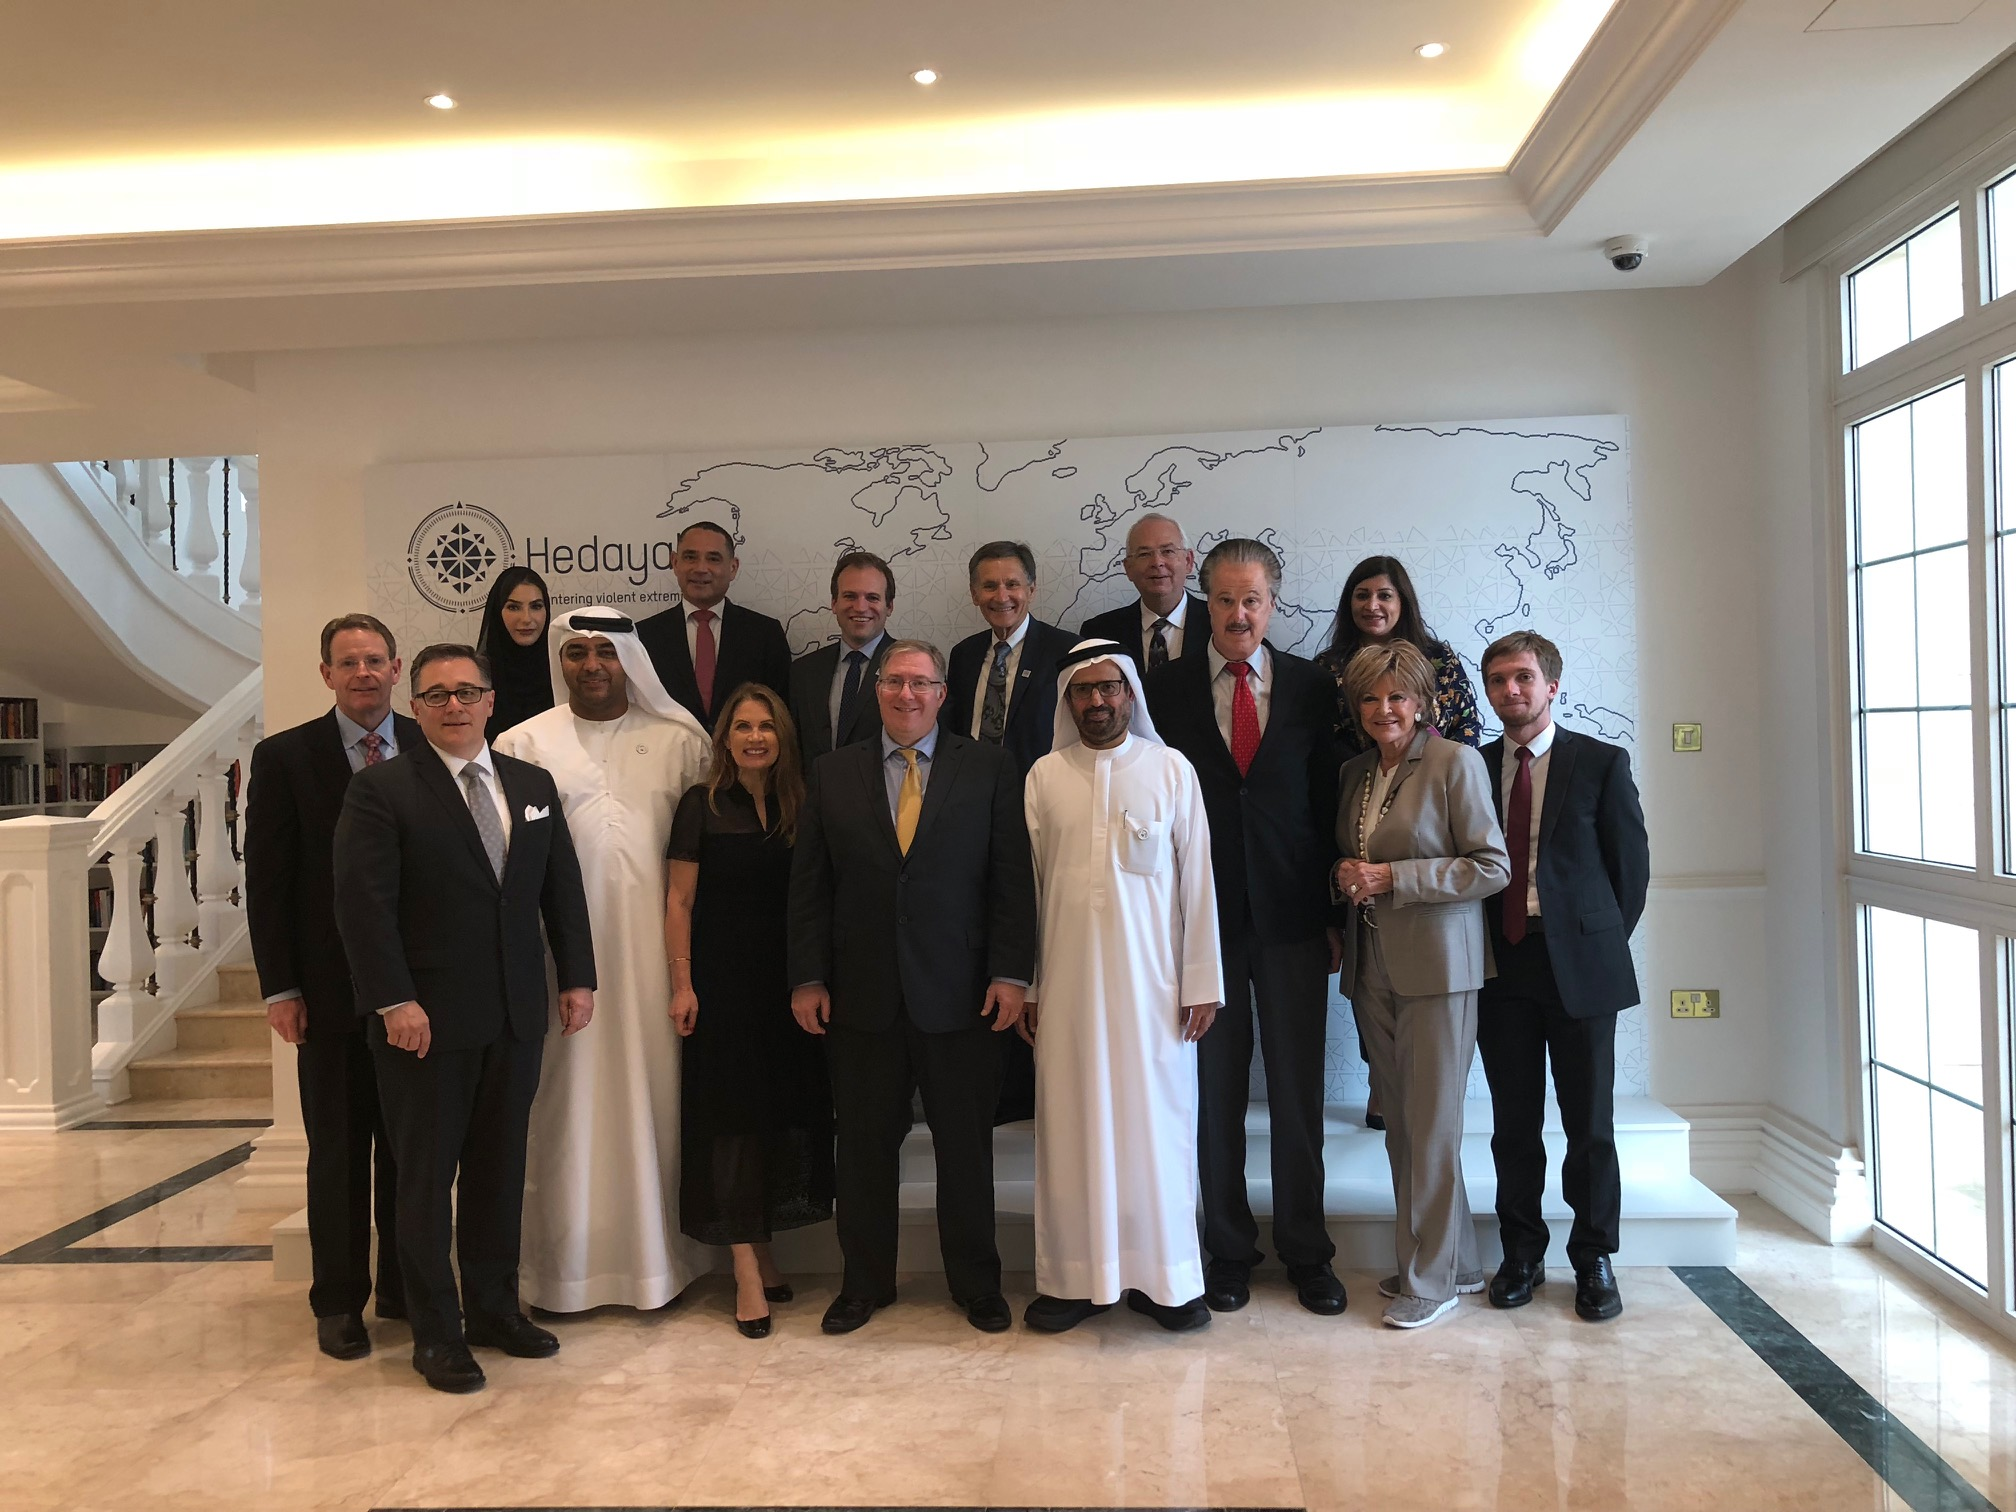 The American Evangelical delegation meets with His Excellency Maqsoud Kruse, executive director Hedayah, and his team in Abu Dhabi.